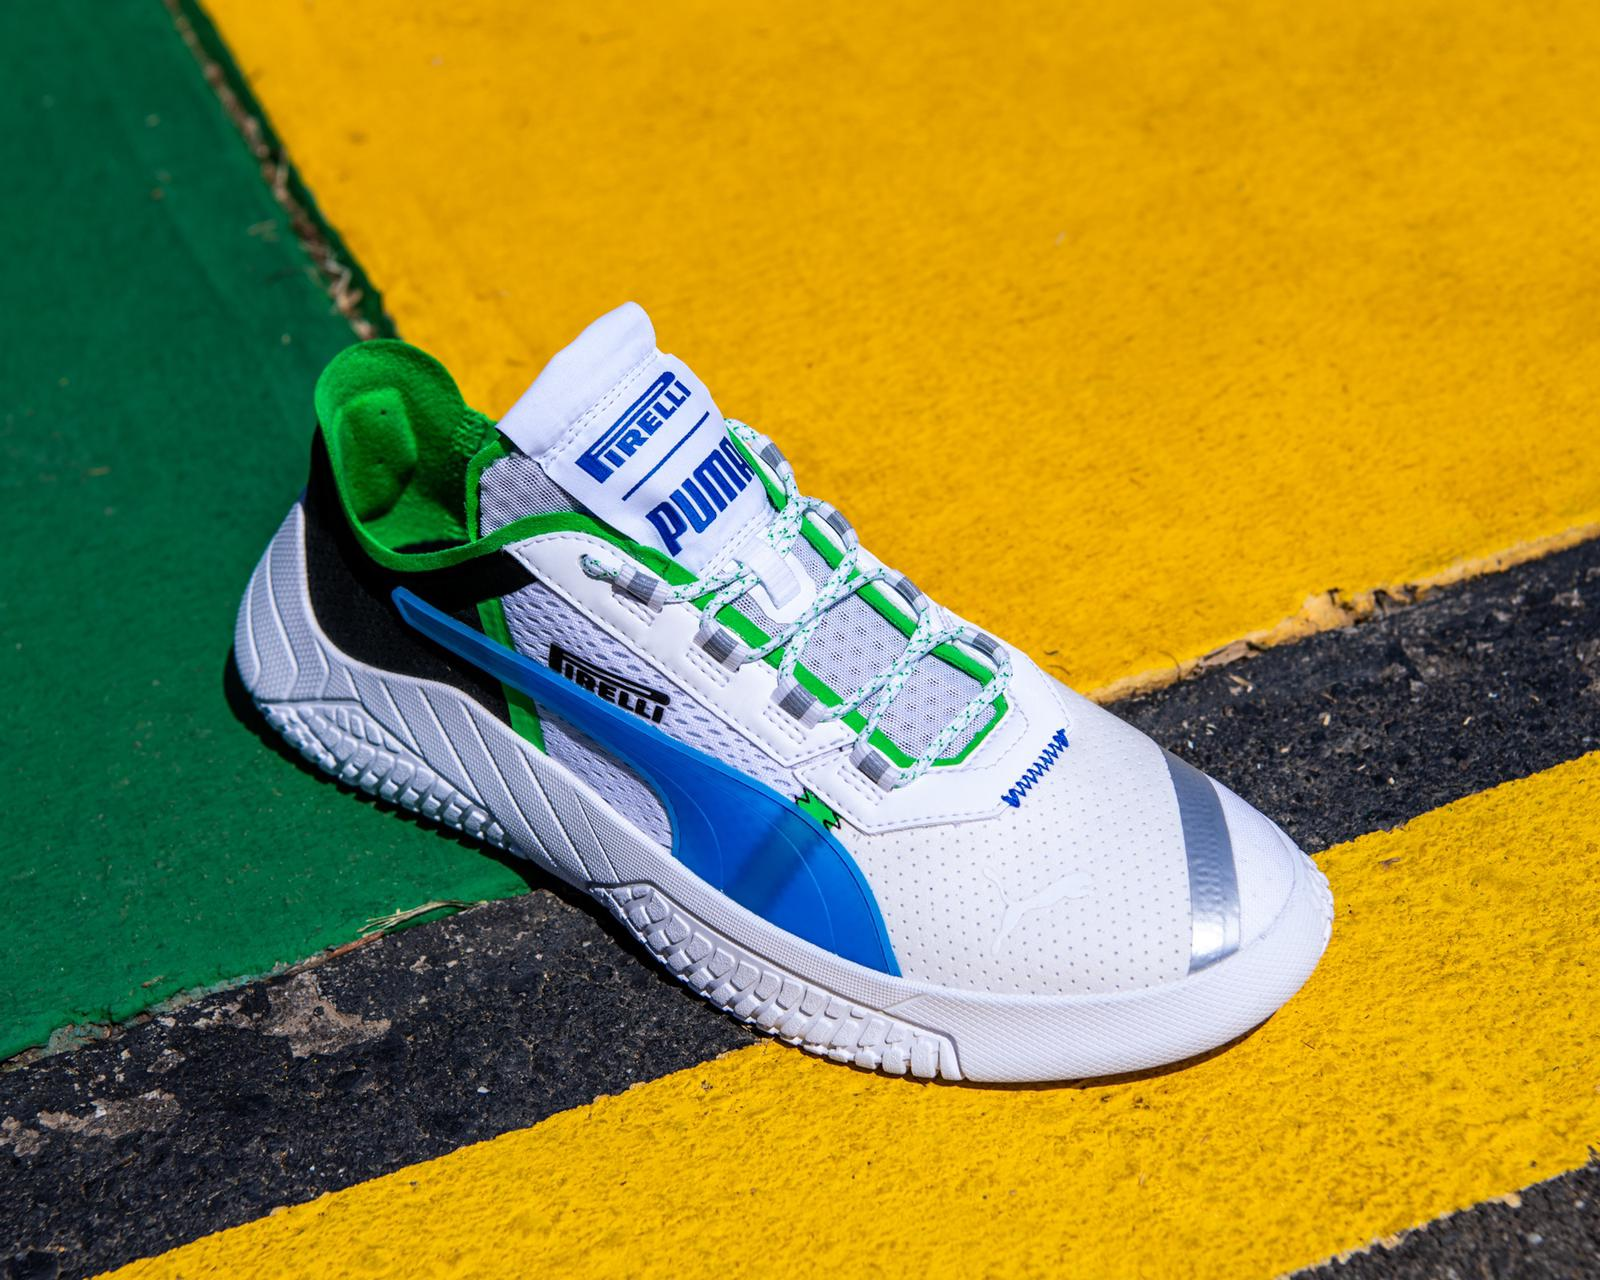 Pirelli Teams up with PUMA for Aerodynamic Shoes